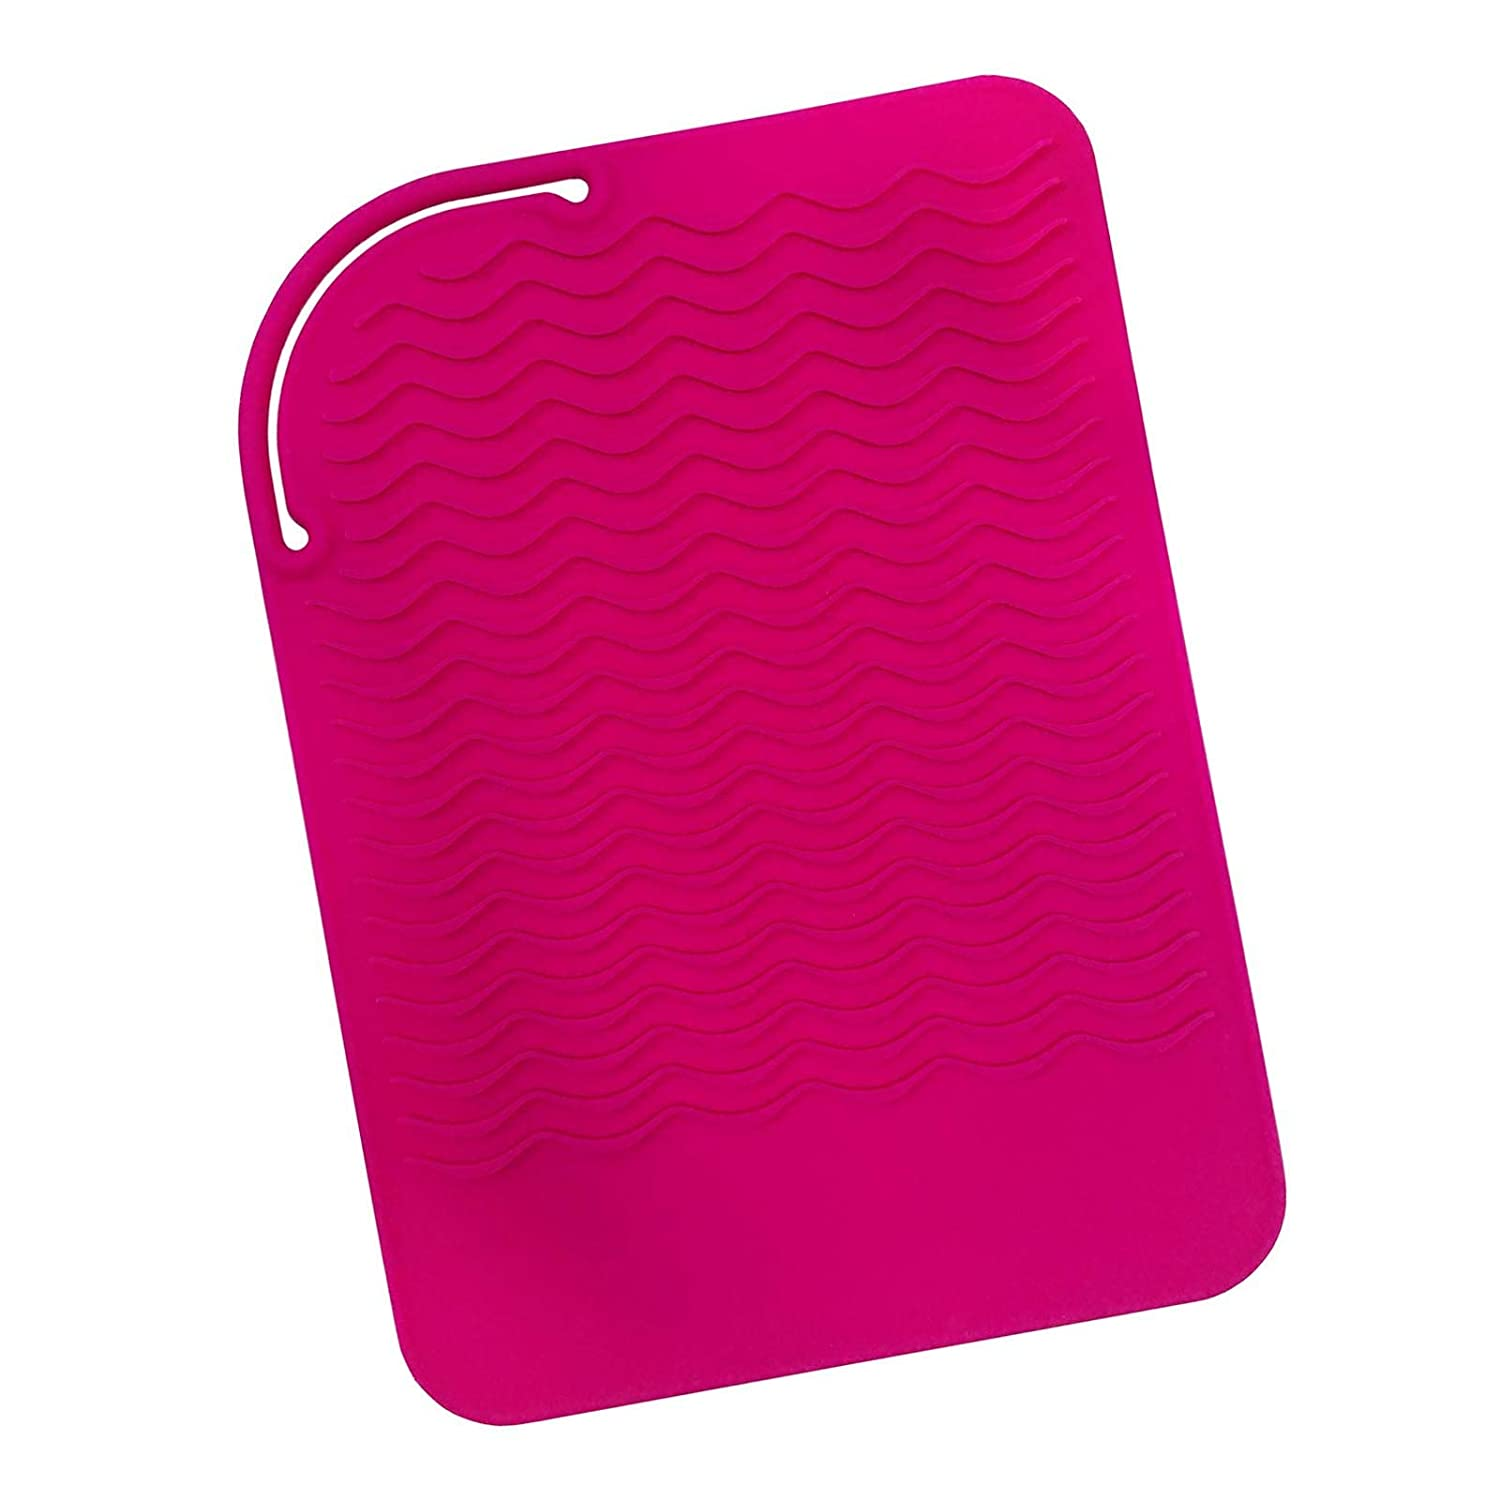 Sygile Silicone Heat Resistant Travel Mat, Anti-heat Pad for Hair Straighteners, Curling Irons, Flat Irons and Other Hot Styling Tools - Hot Pink